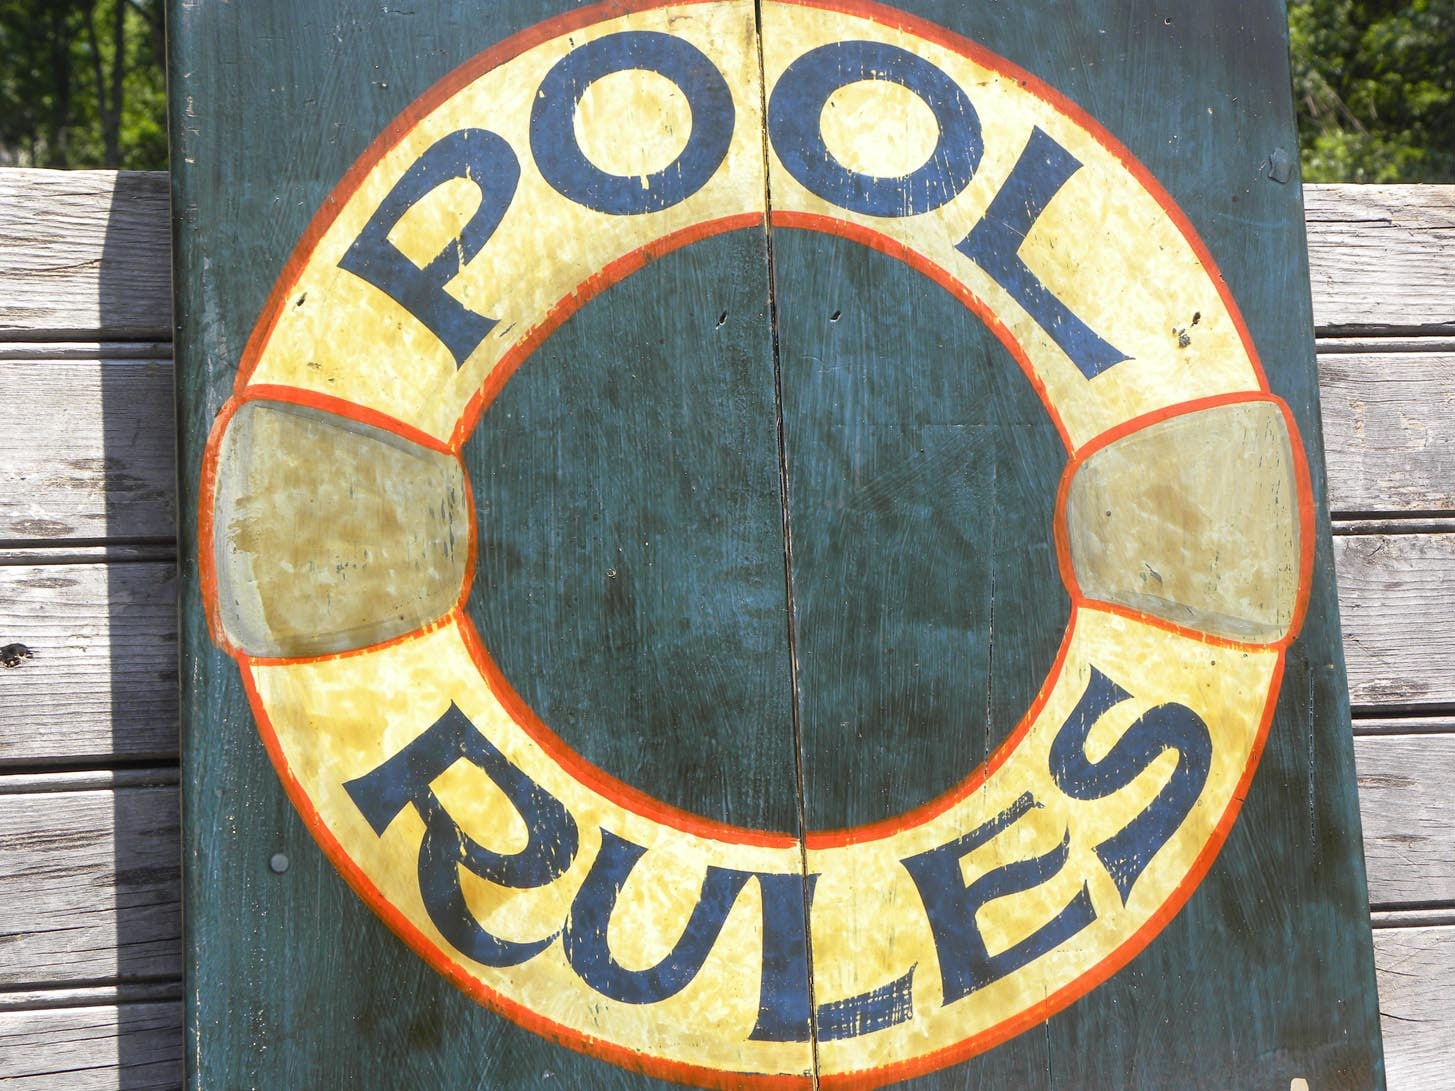 Swimming Pool Rules Sign Woodenoutdoor Original Sign